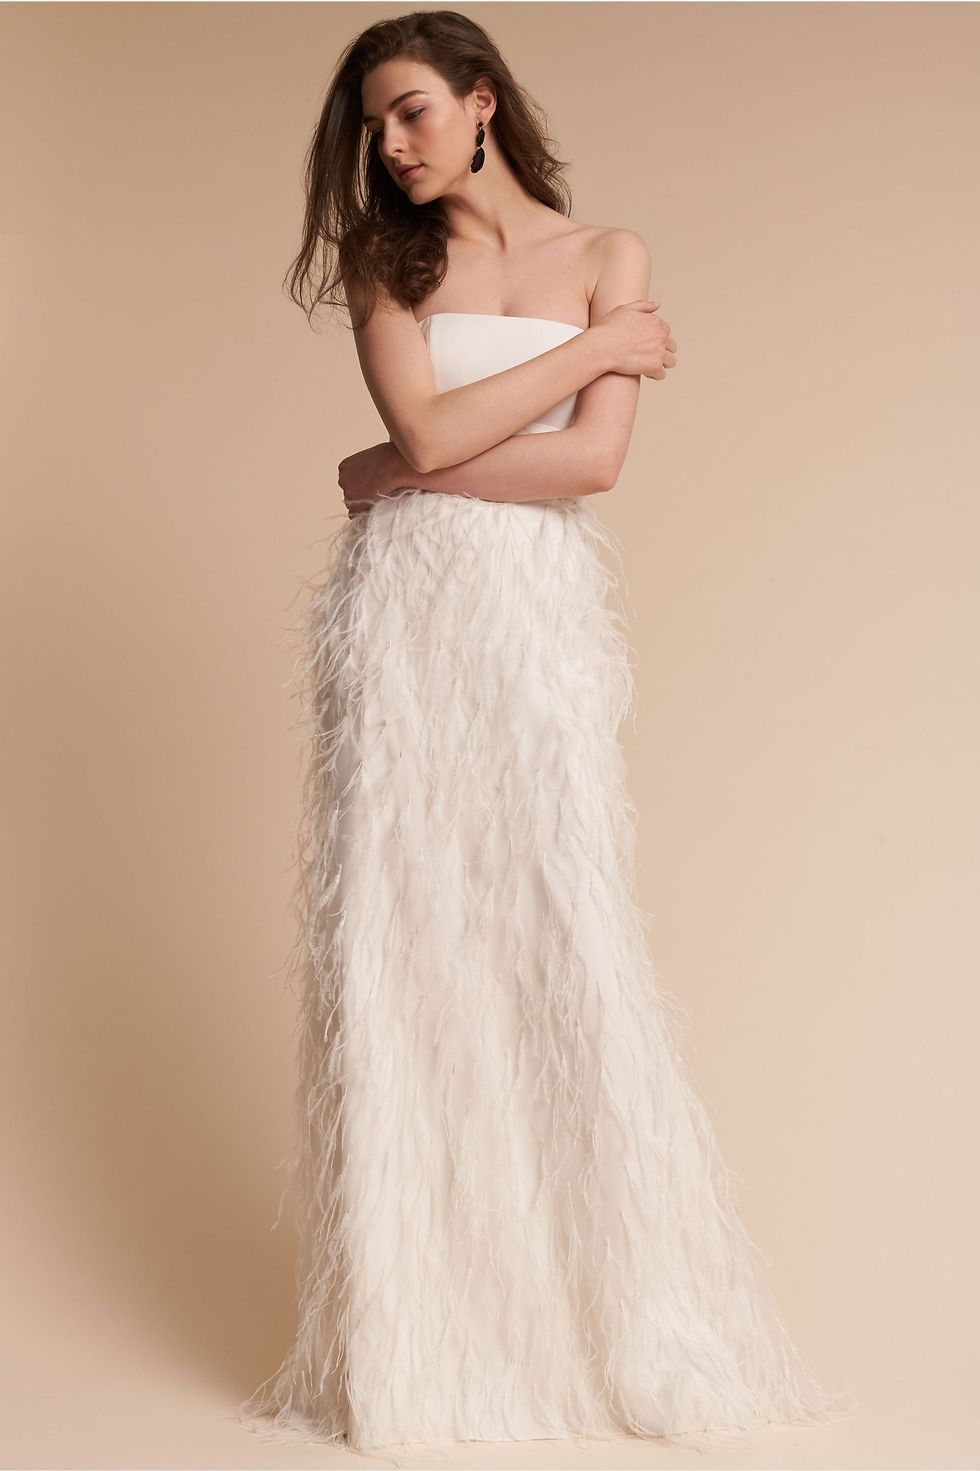 13 Spectacular 2017 Wedding Dresses That You Can Buy Now